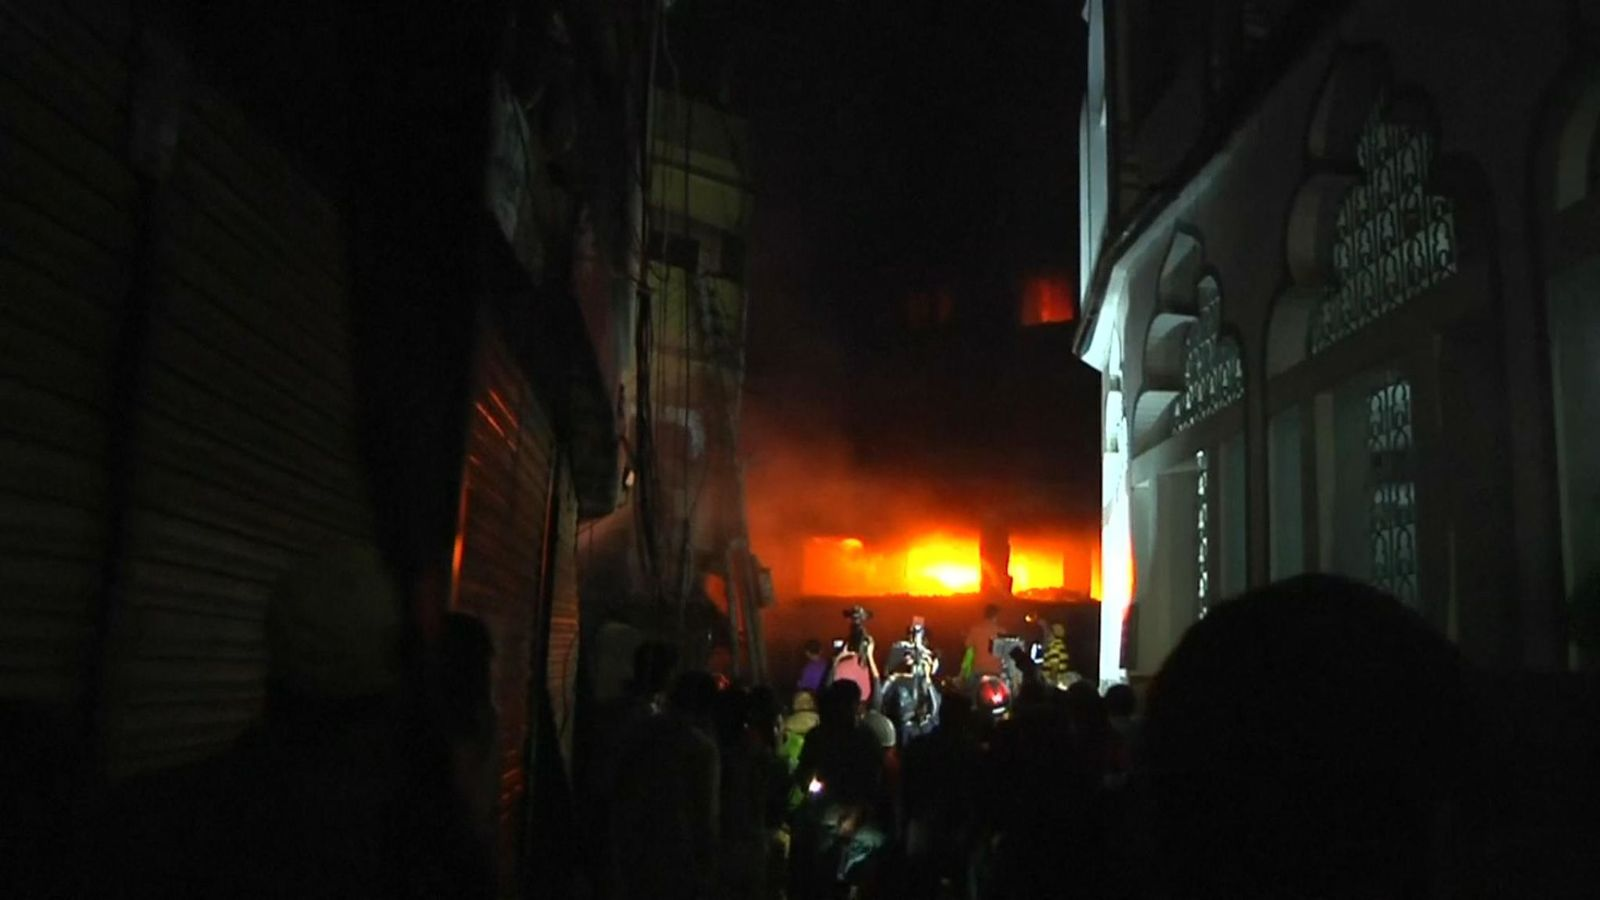 At least 70 die in Bangladesh plastics warehouse fire